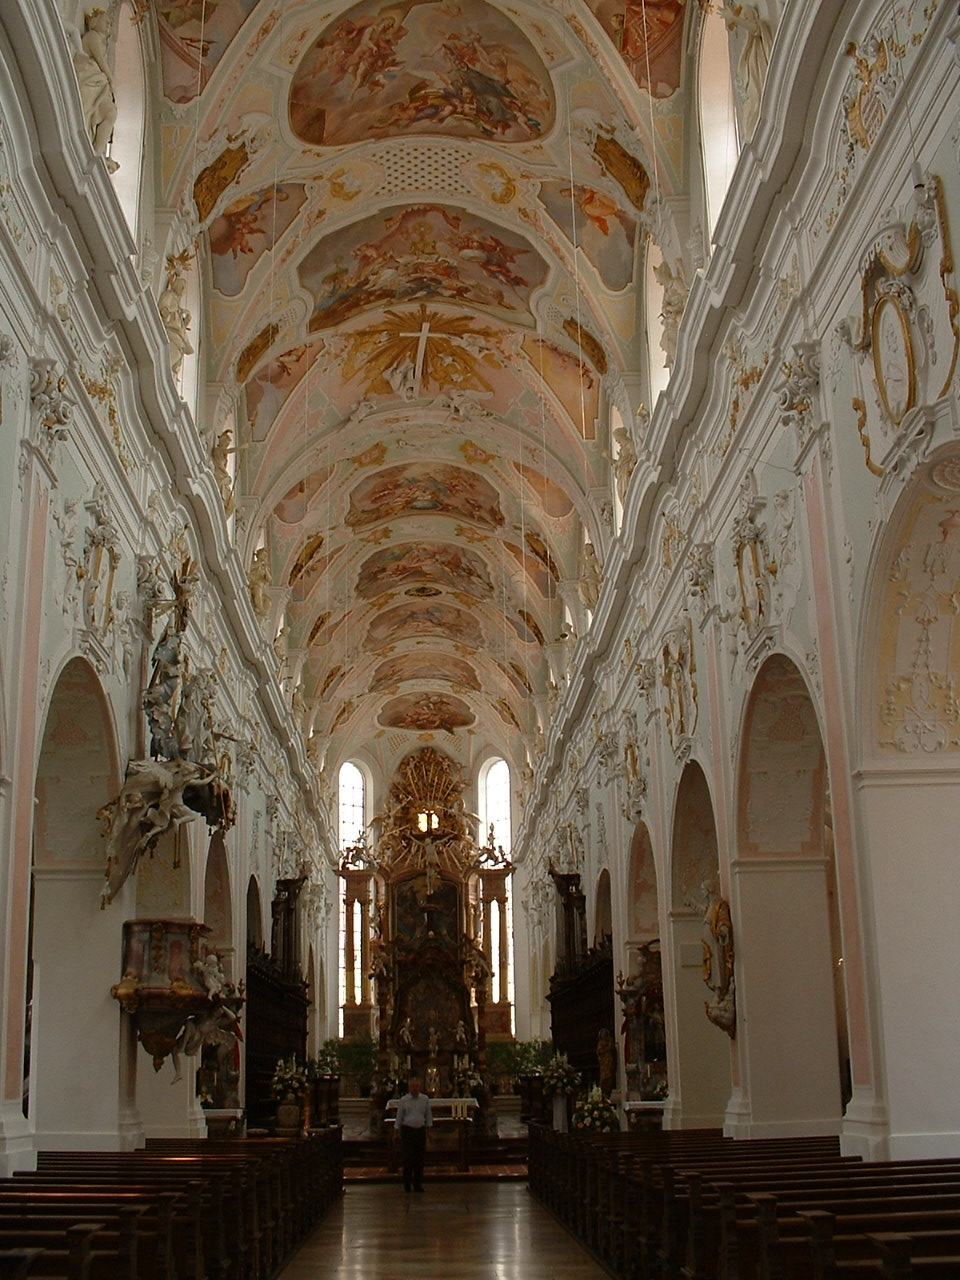 https://upload.wikimedia.org/wikipedia/commons/1/15/Ochsenhausen_Abbey_church_interior_01.JPG